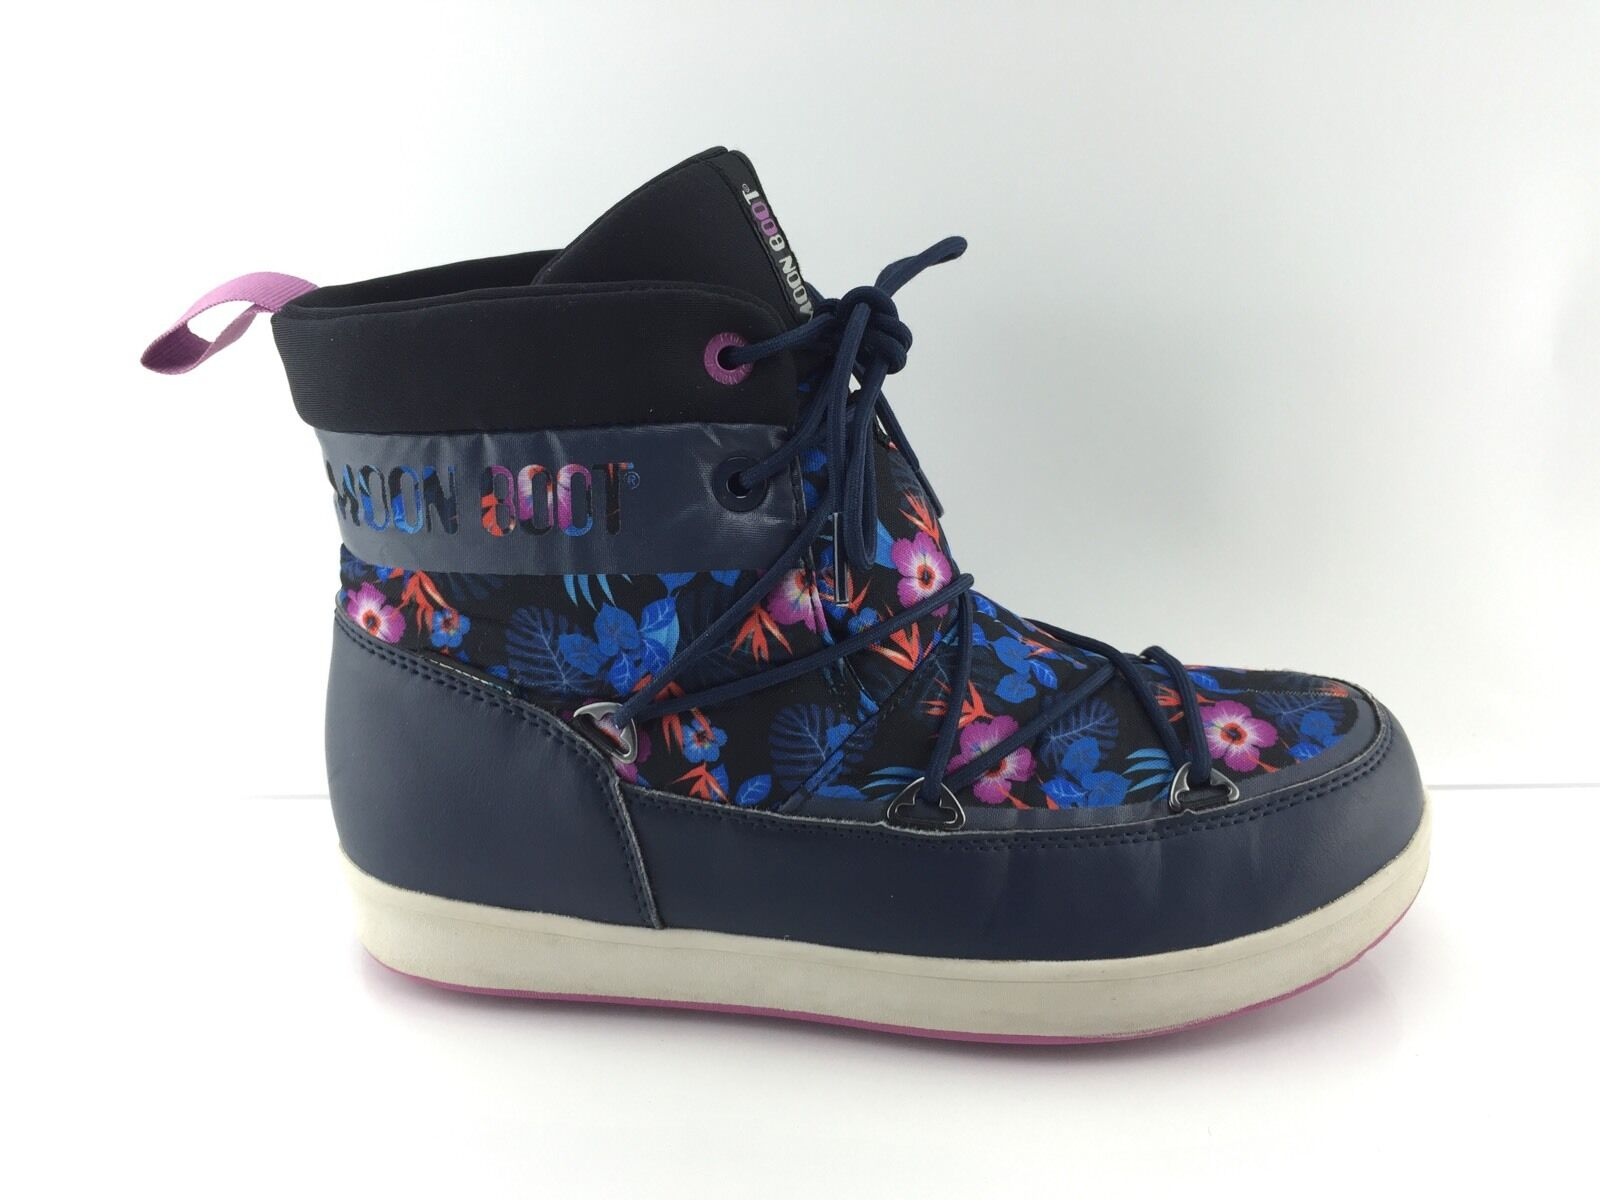 Moon Boot Men's Navy/Multi Color Ankle Boots 8.5